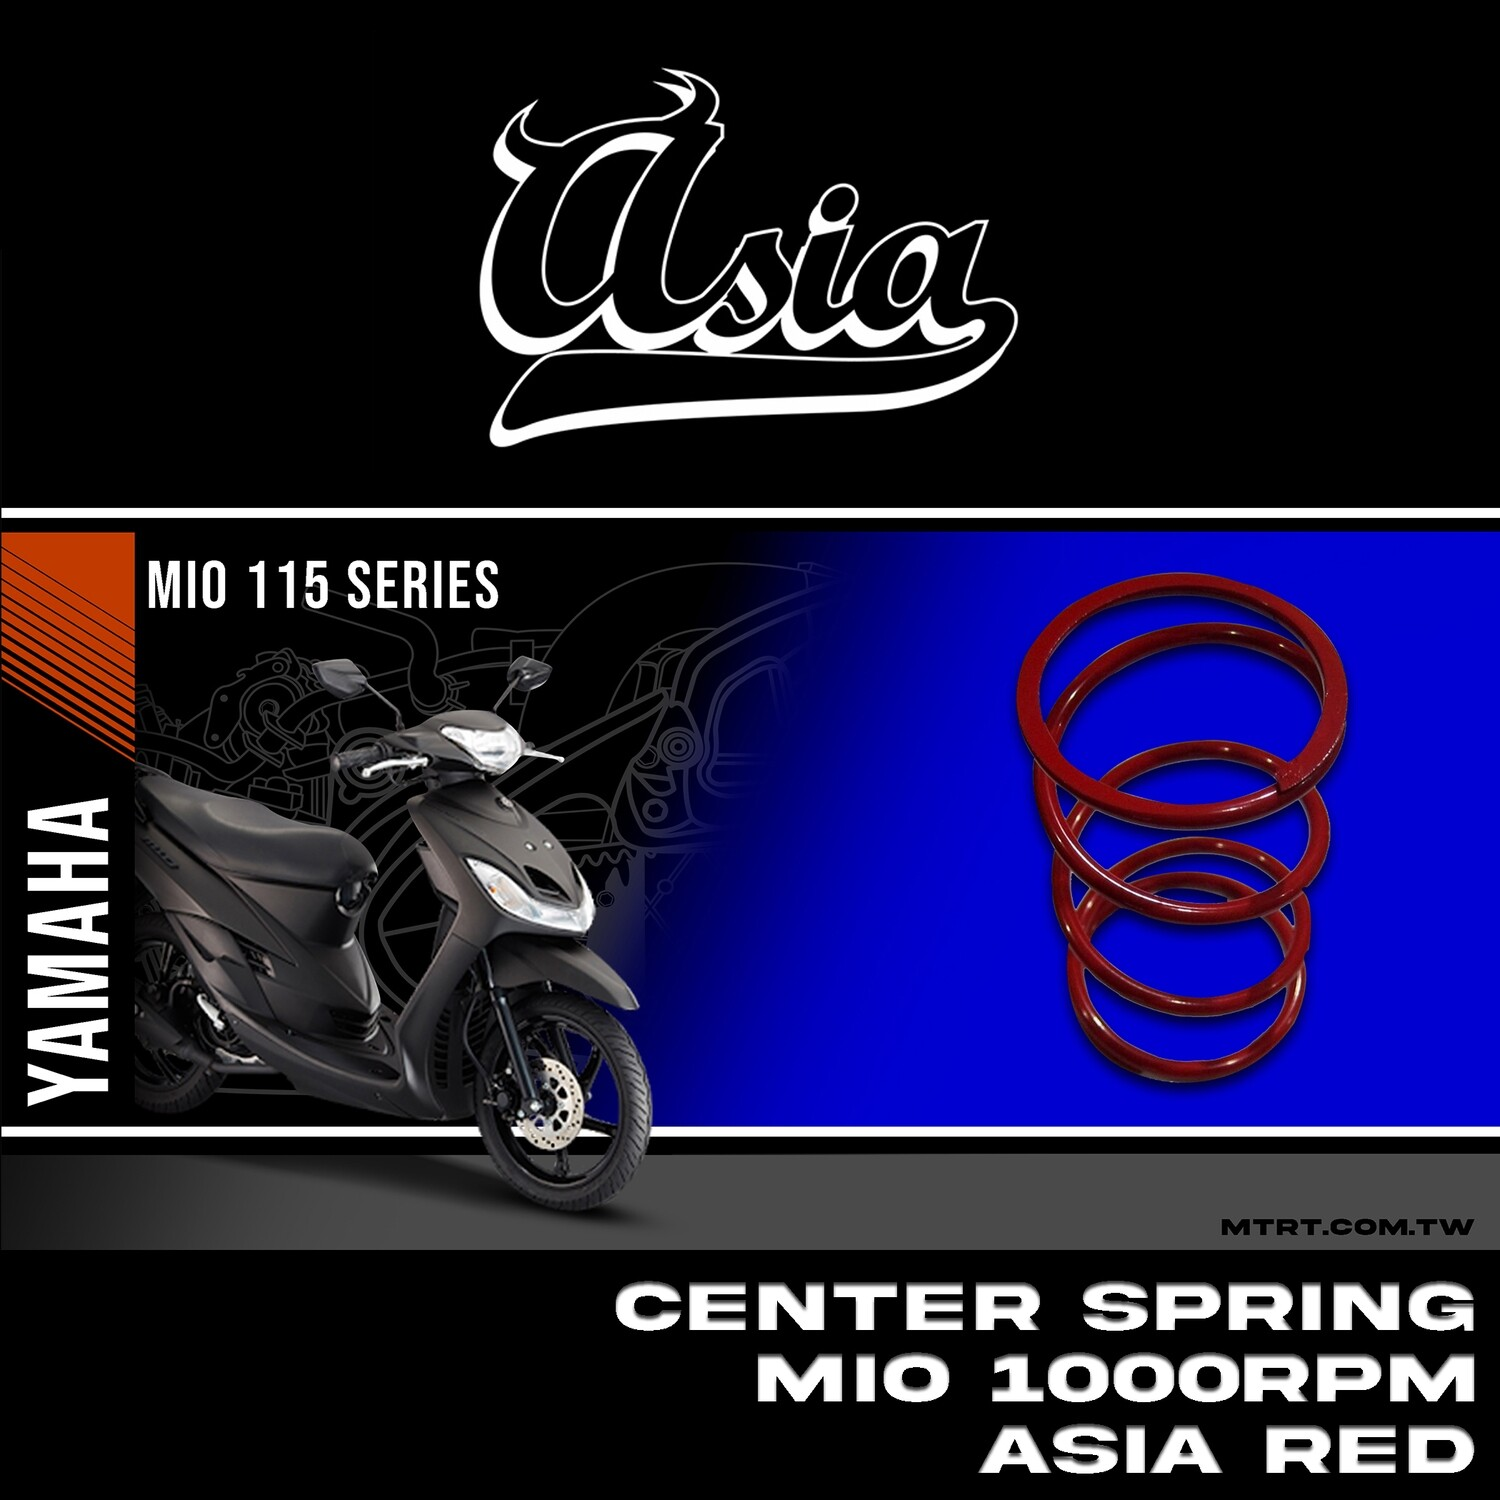 CENTER SPRING  MIO 1000RPM  ASIA RED 4th S-4